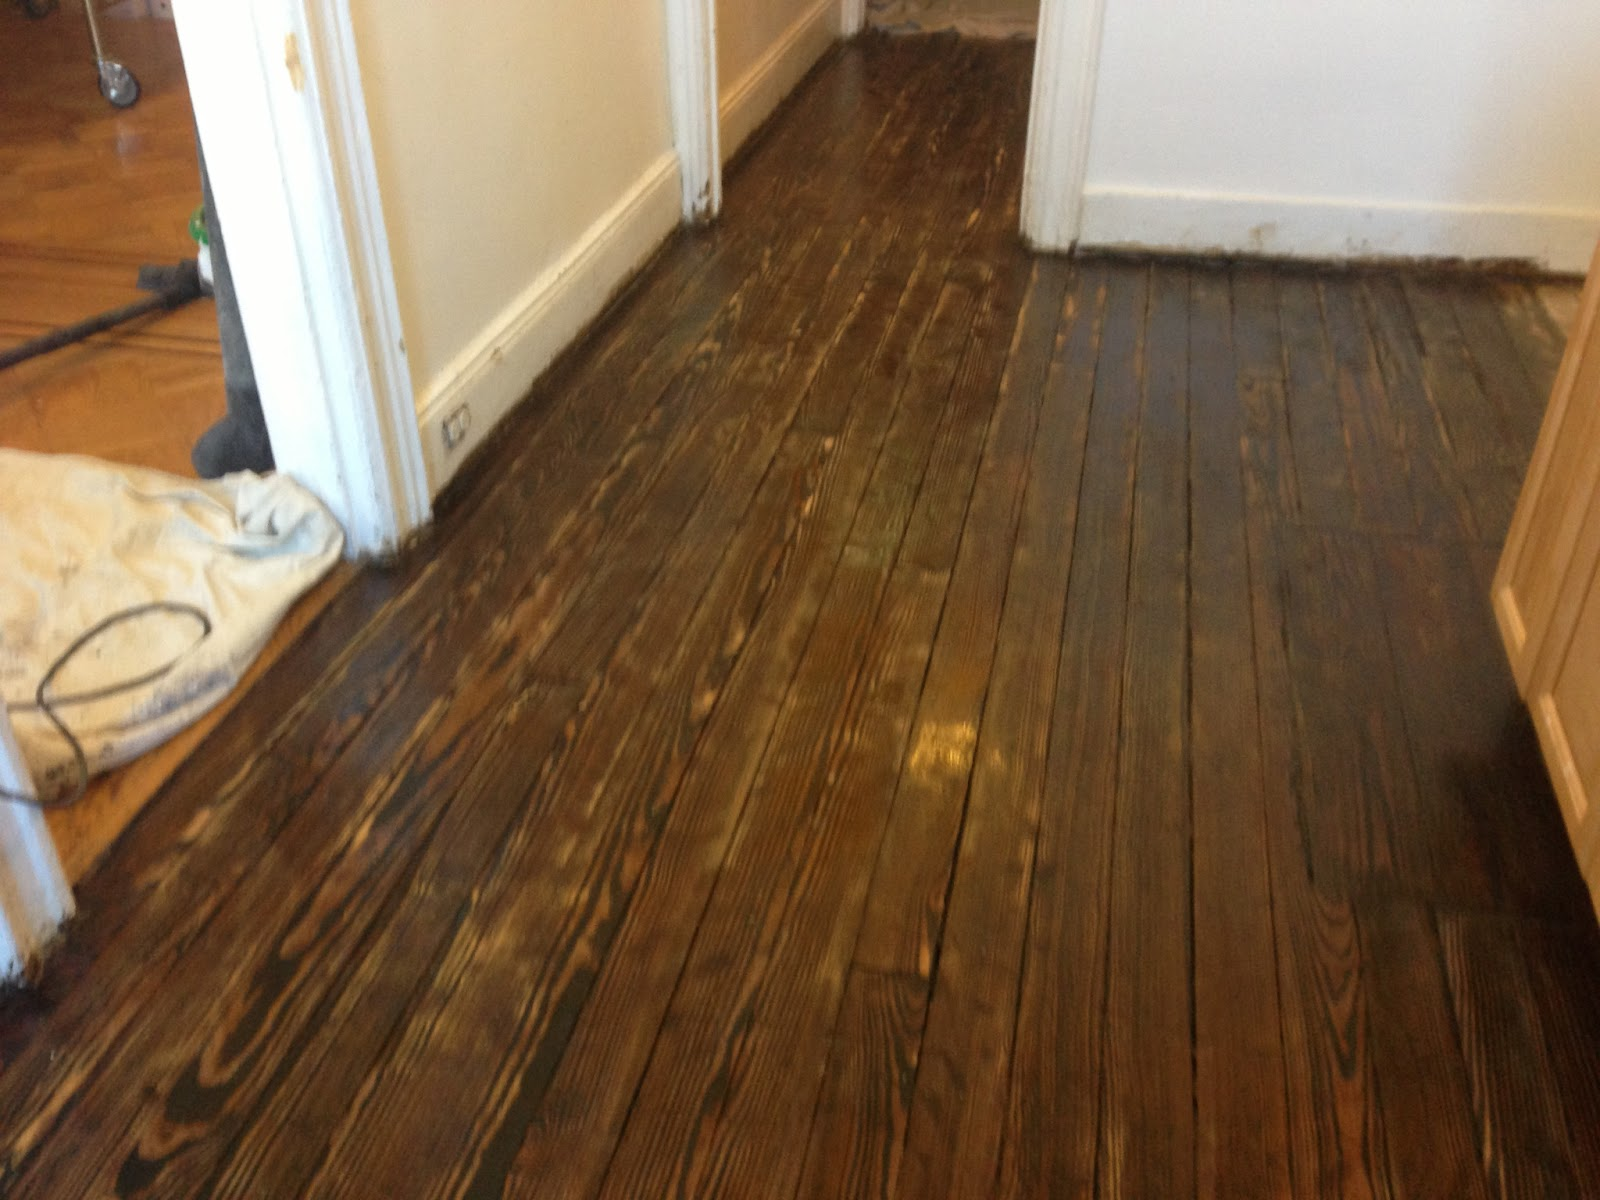 Minwax dark walnut floor photos home design idea for Hardwood floors queens ny